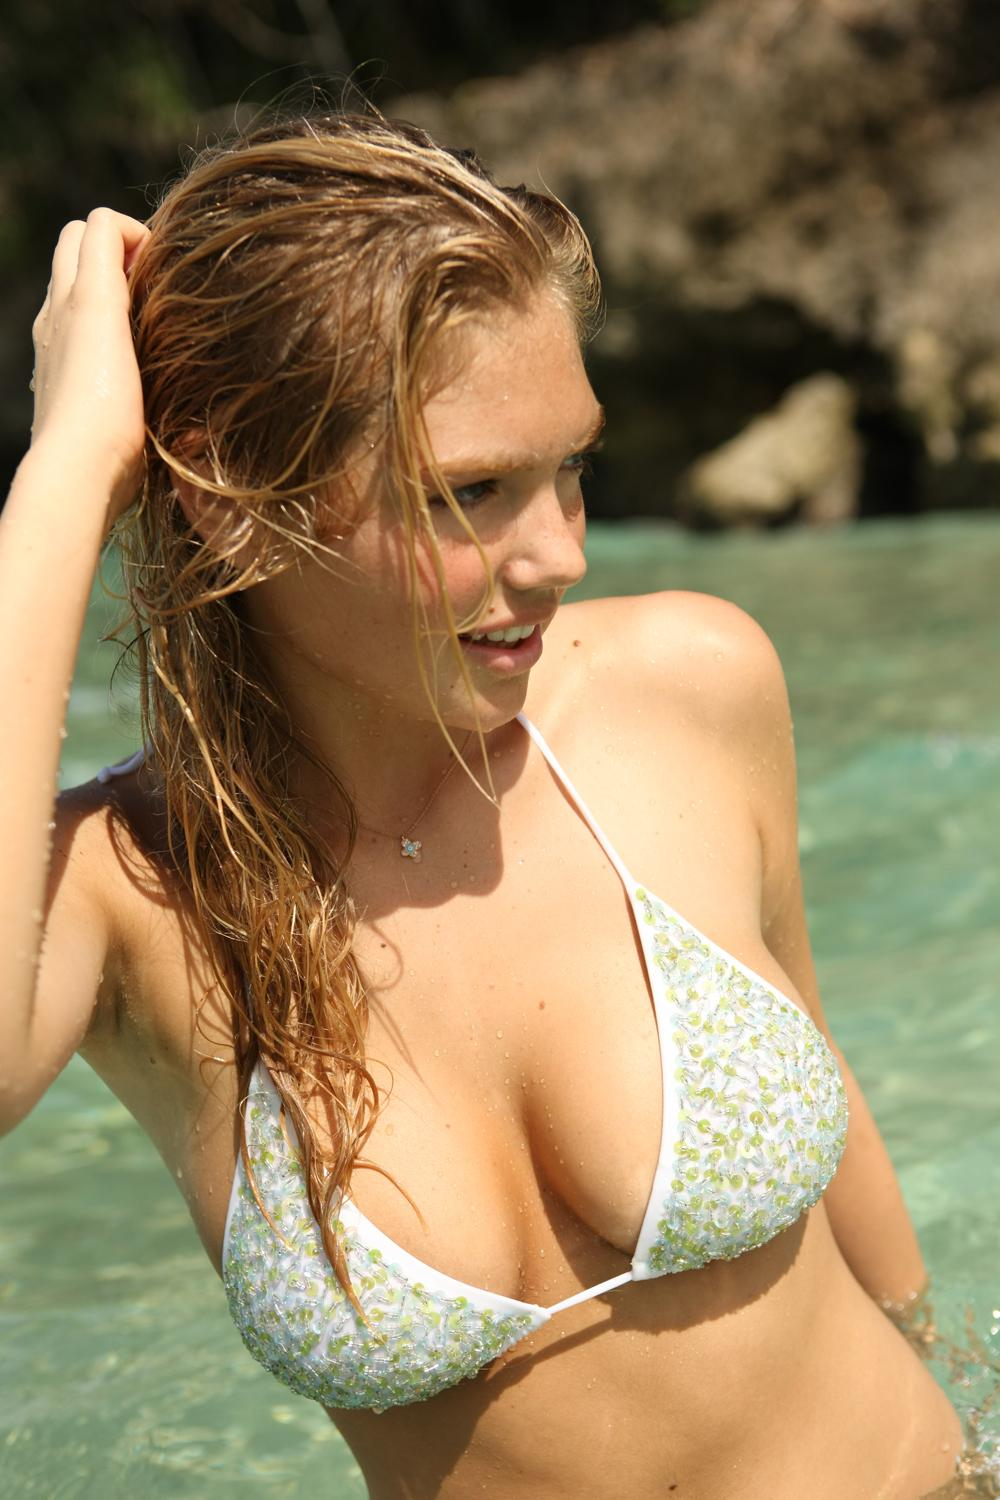 Kate Upton Big Boobs Sexy Bikini Picture and Photo